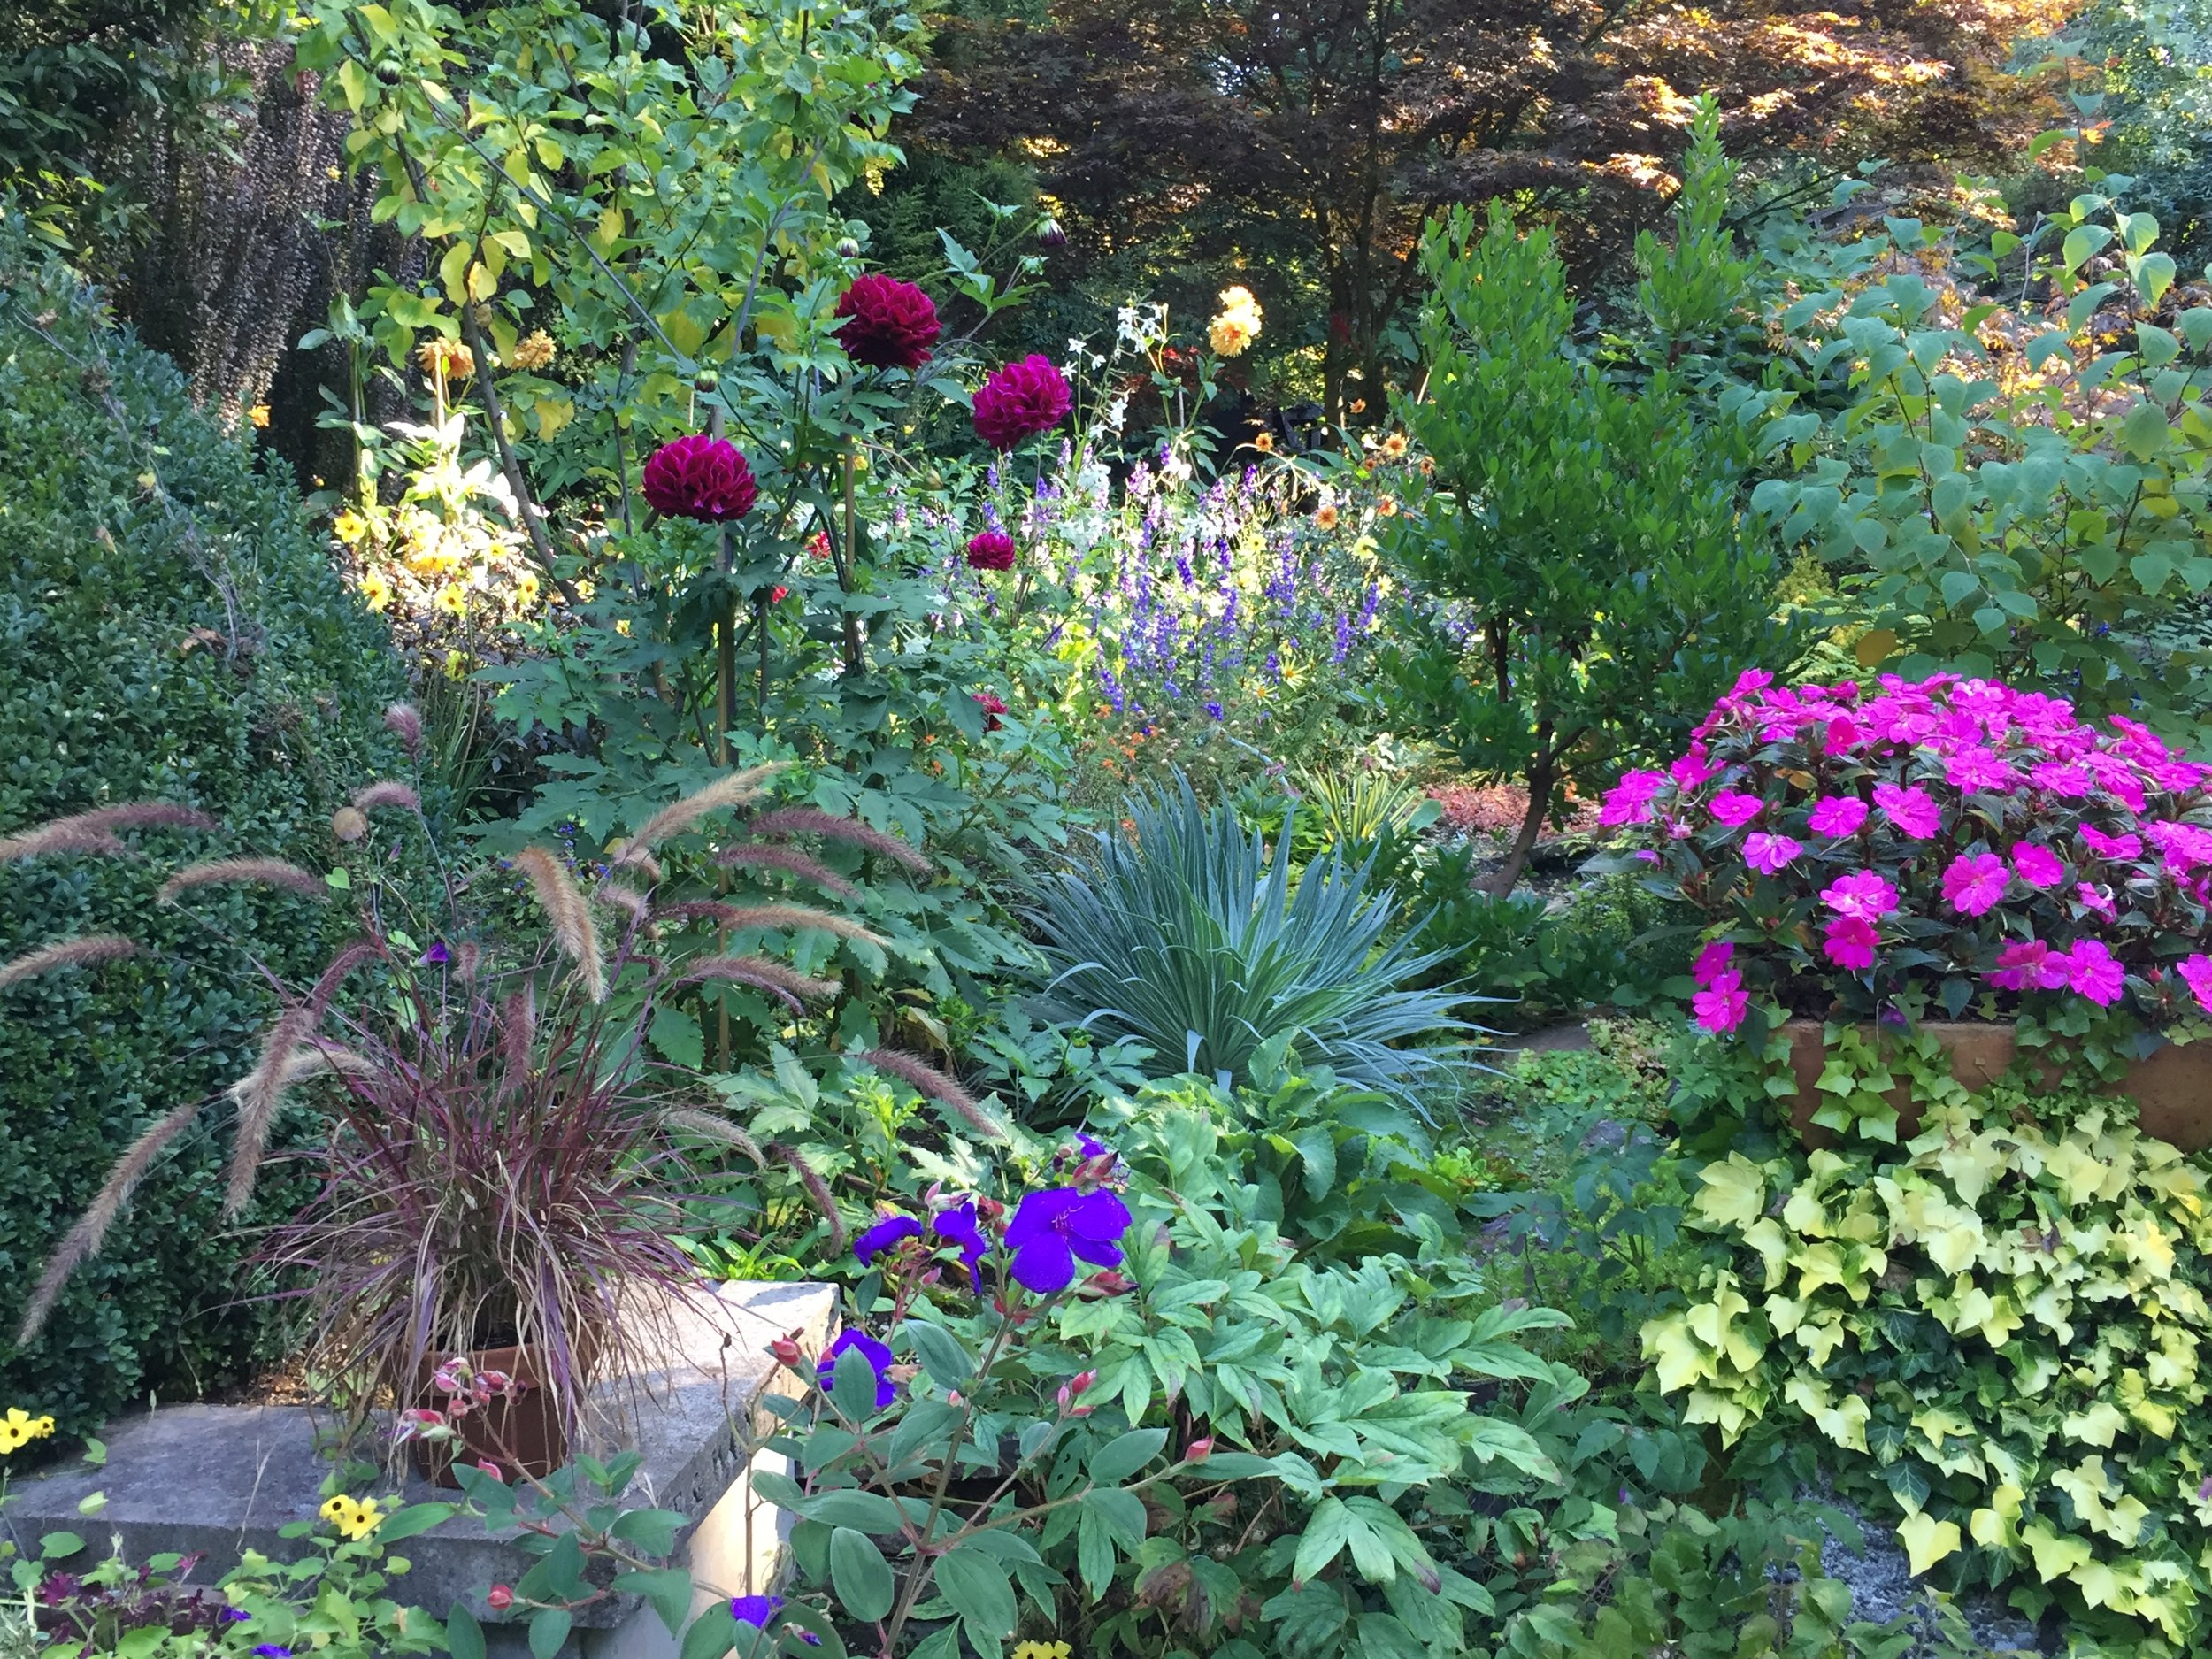 A Bright Mix of Plants